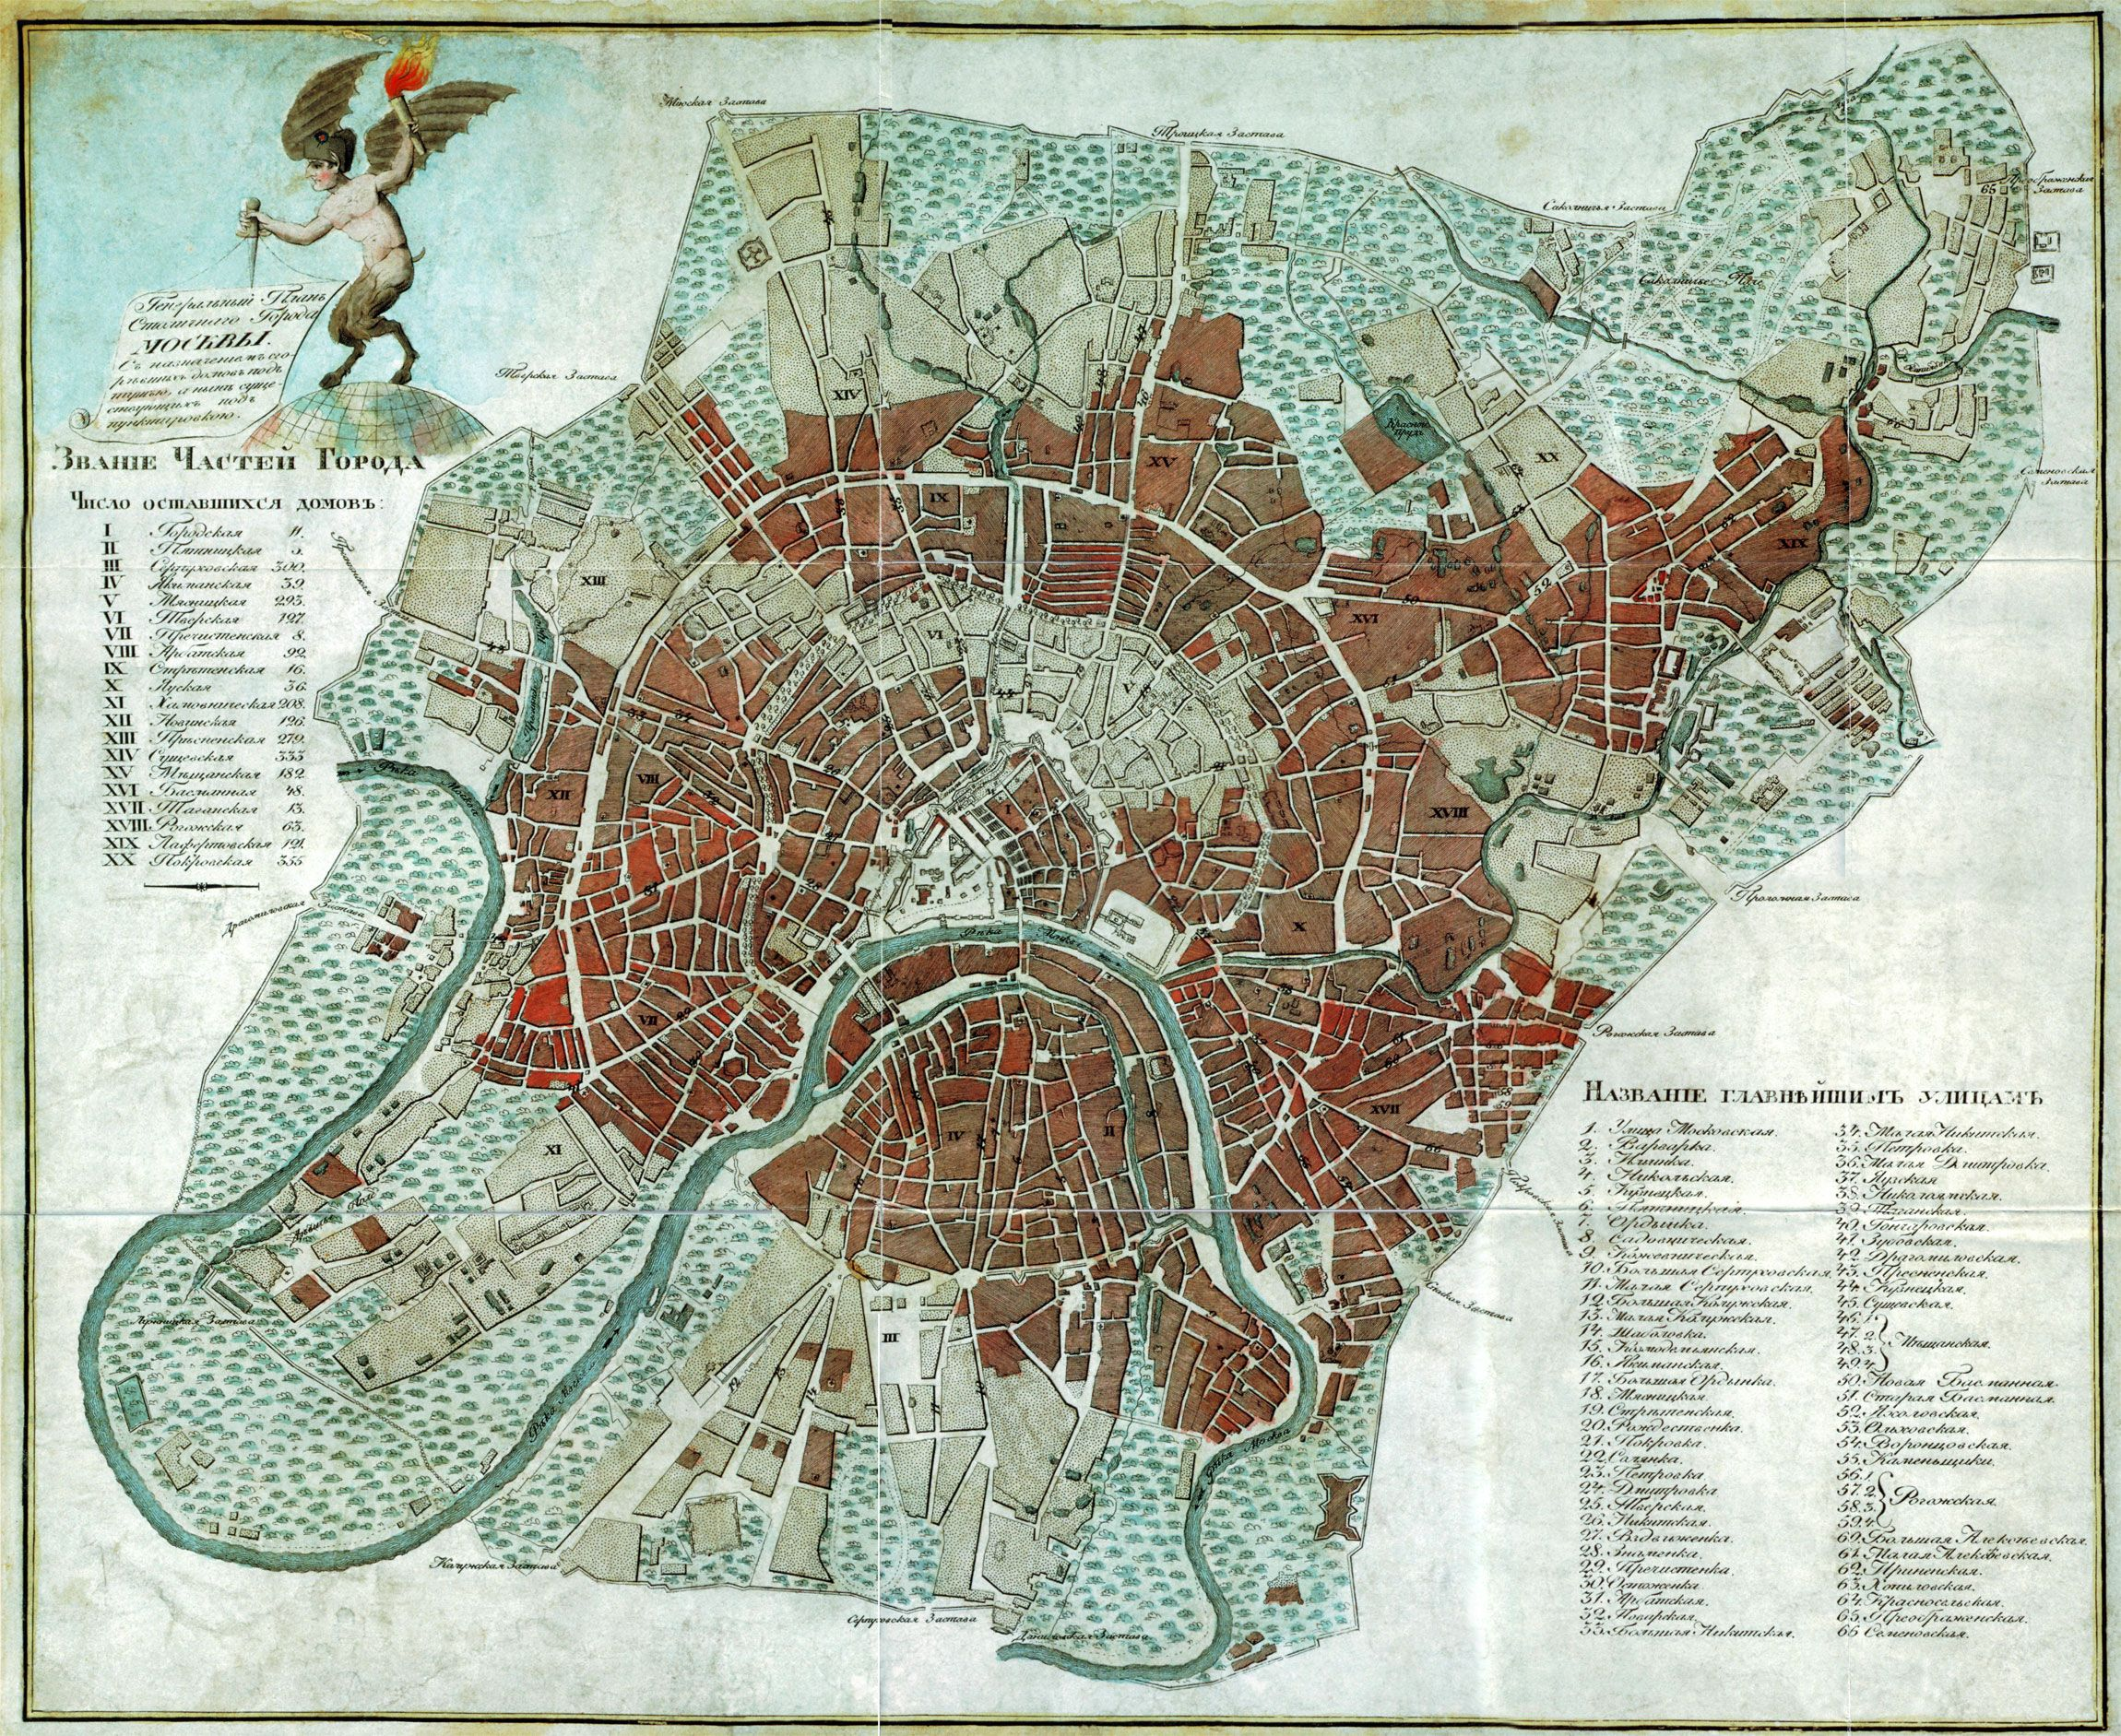 1812 Map of the Great Fire of